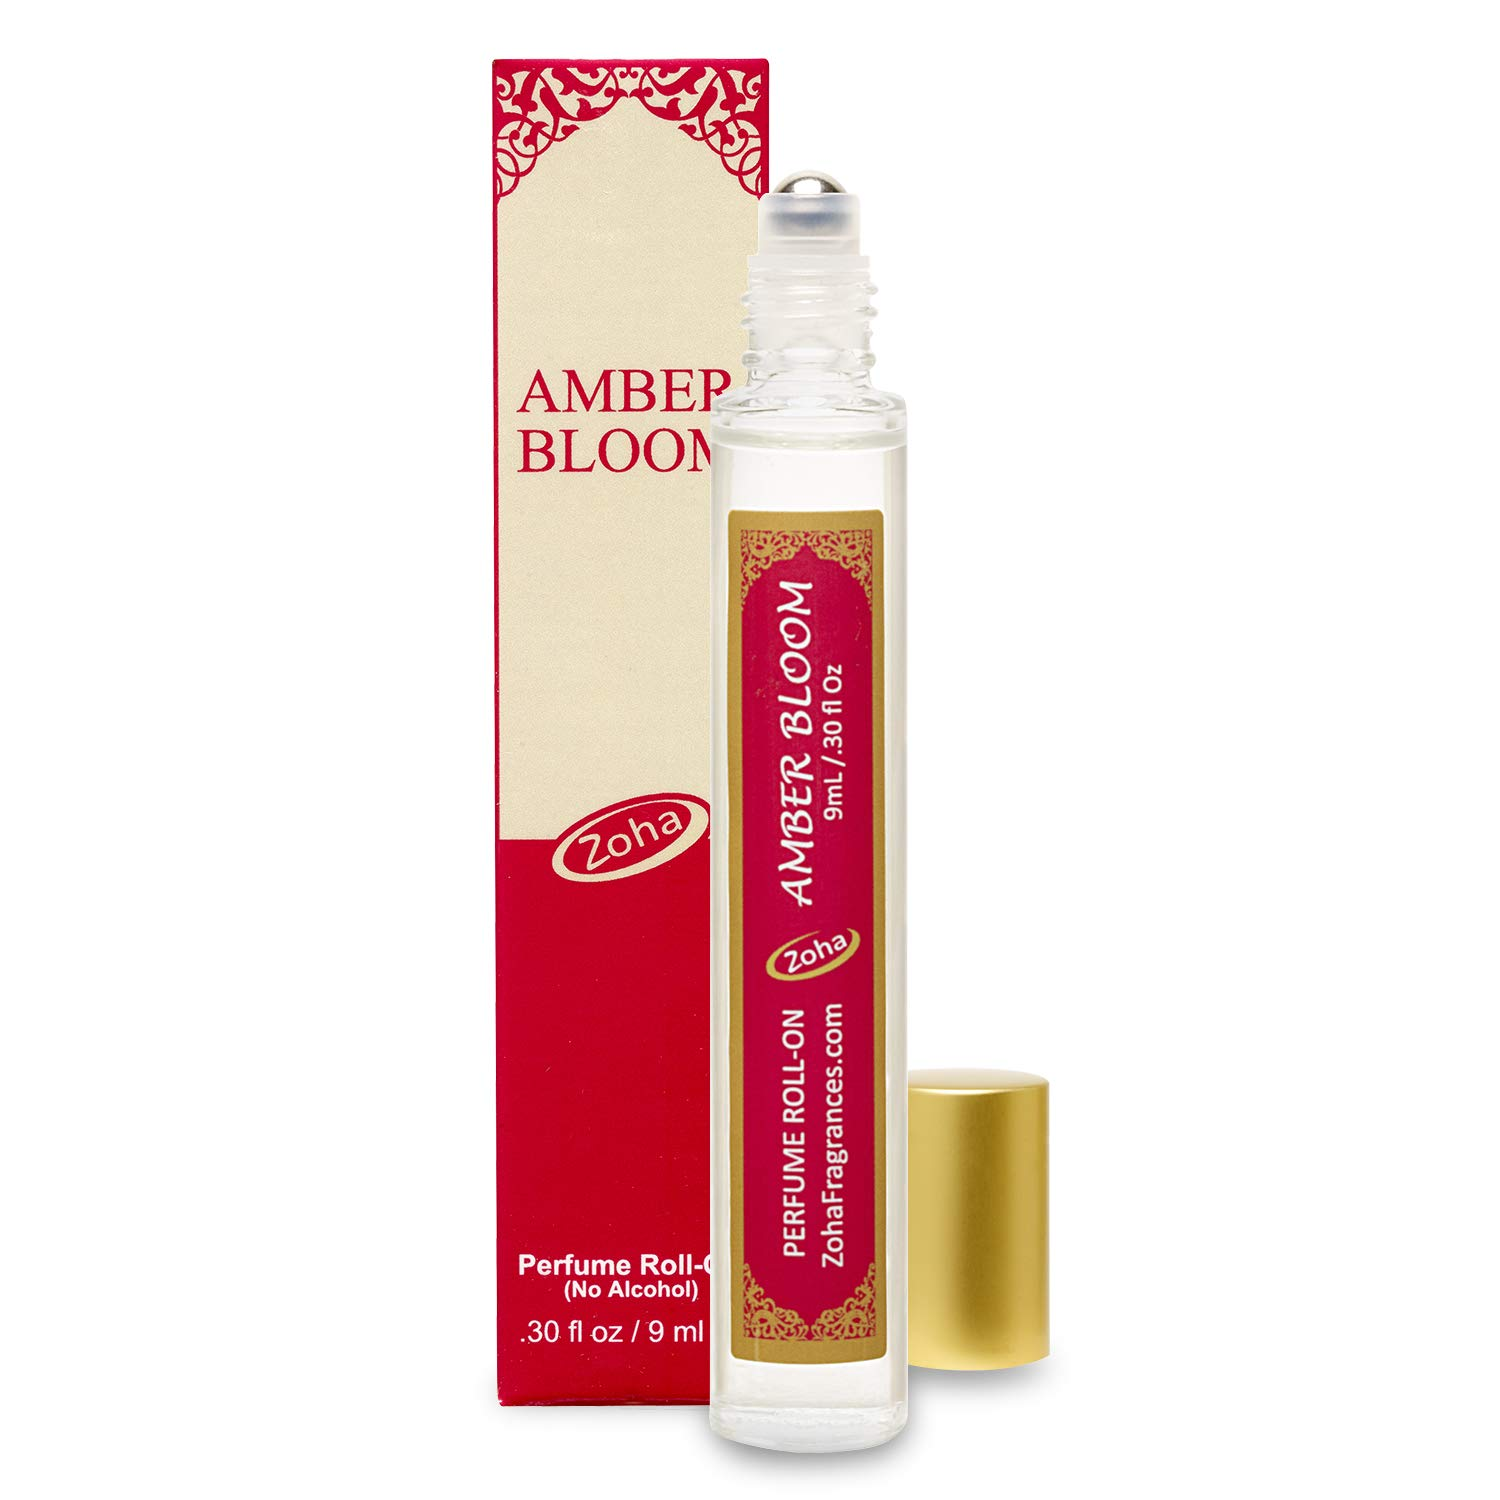 Amber Bloom Perfume Oil Roll-On (No Alcohol) - Essential Oils and Clean Beauty Perfumes for Women and Men by Zoha Fragrances, 9 ml / 0.30 fl Oz